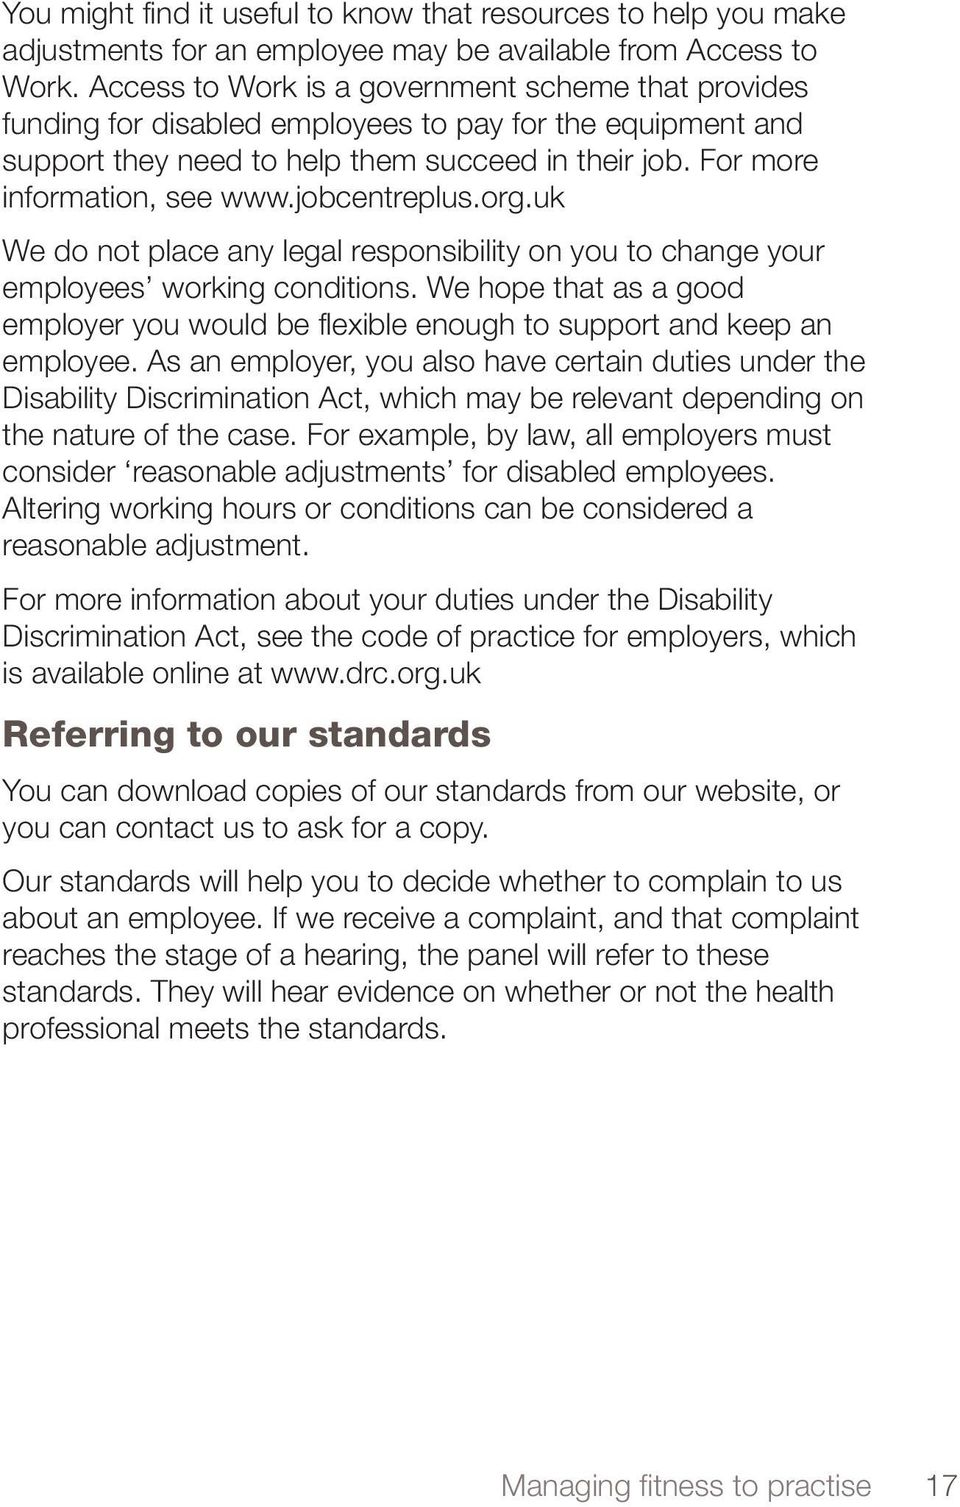 jobcentreplus.org.uk We do not place any legal responsibility on you to change your employees working conditions.